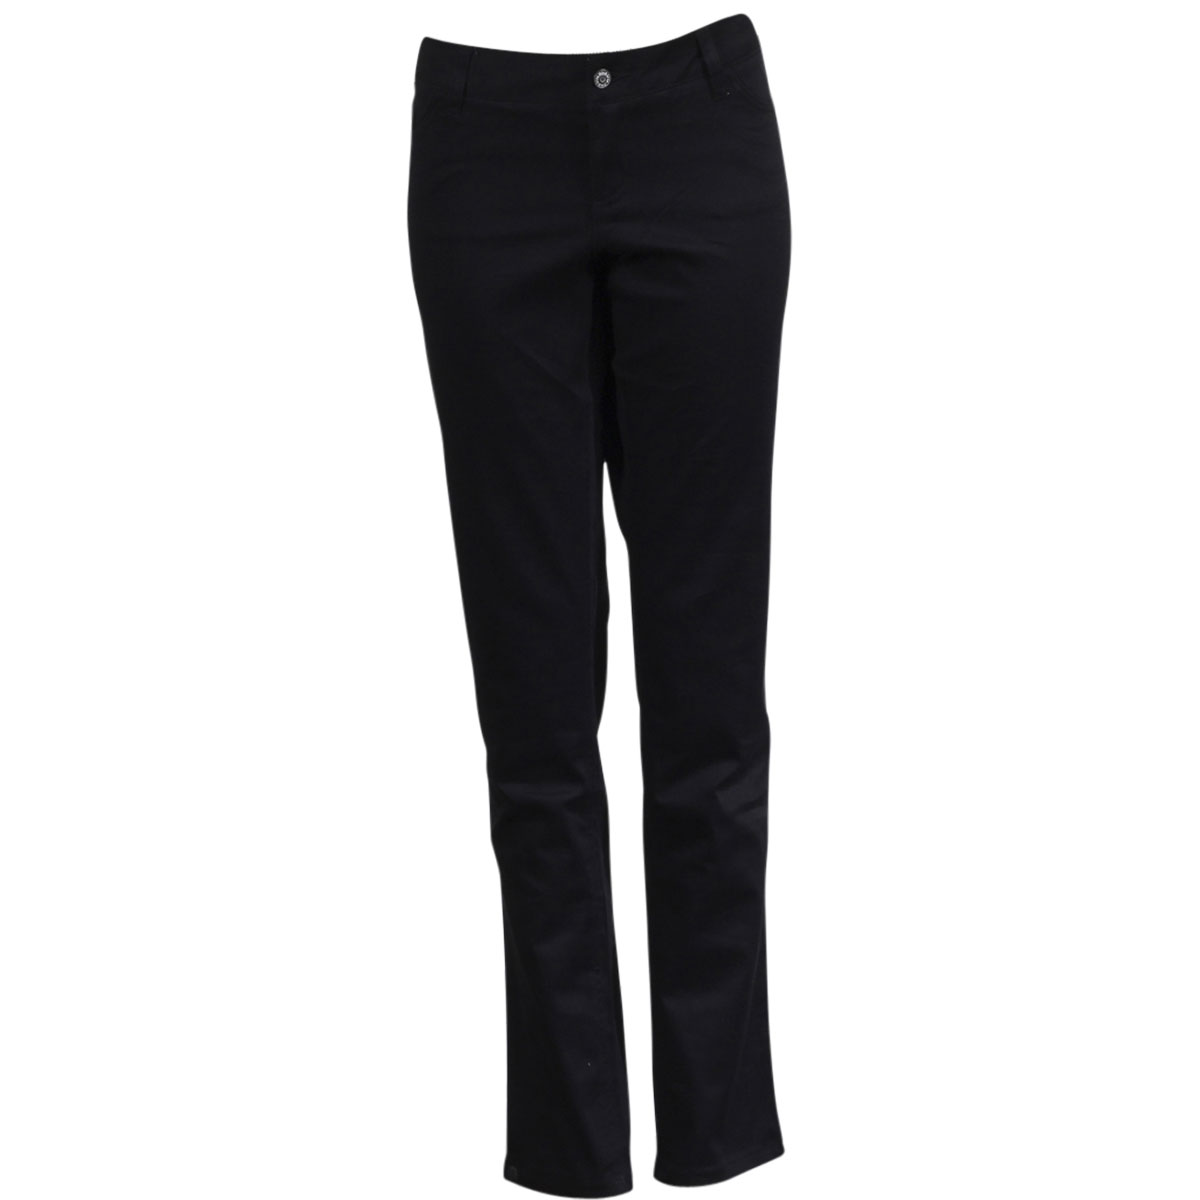 Dickies girl 5 pocket skinny jeans